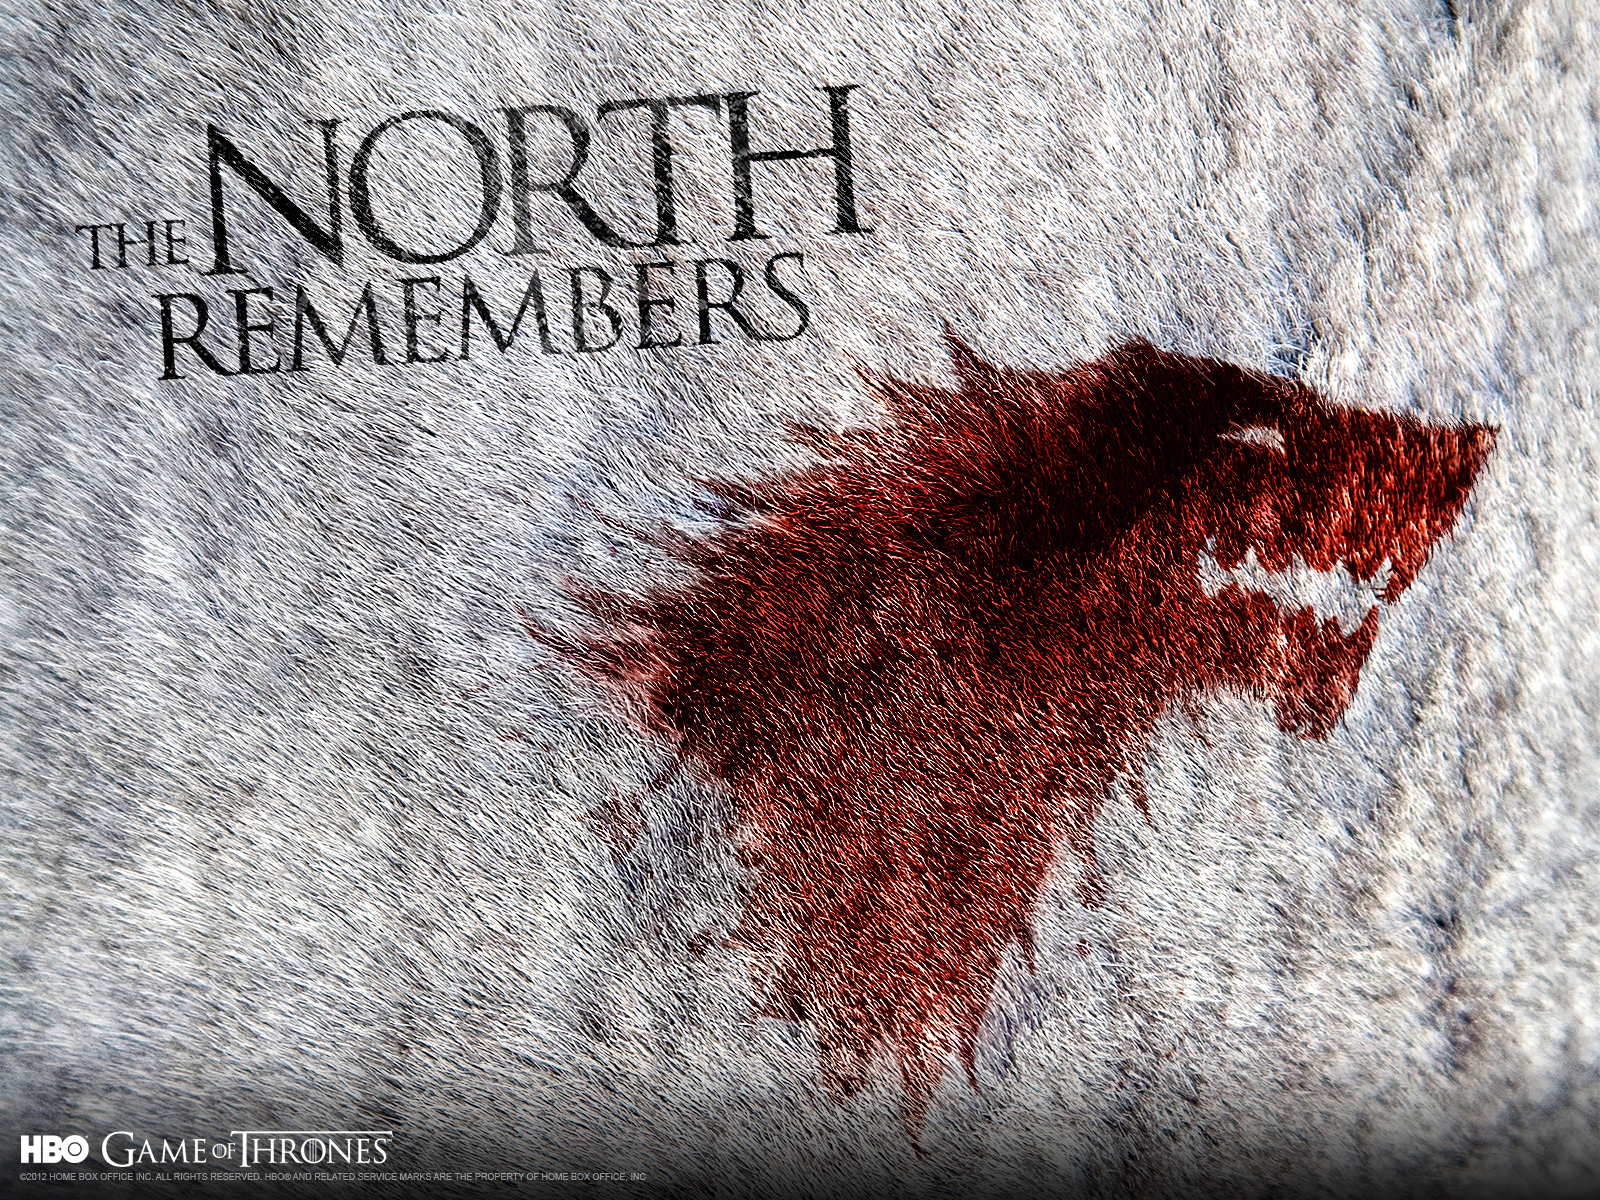 Game of Thrones images The North Remembers wallpaper photos 29426322 1600x1200